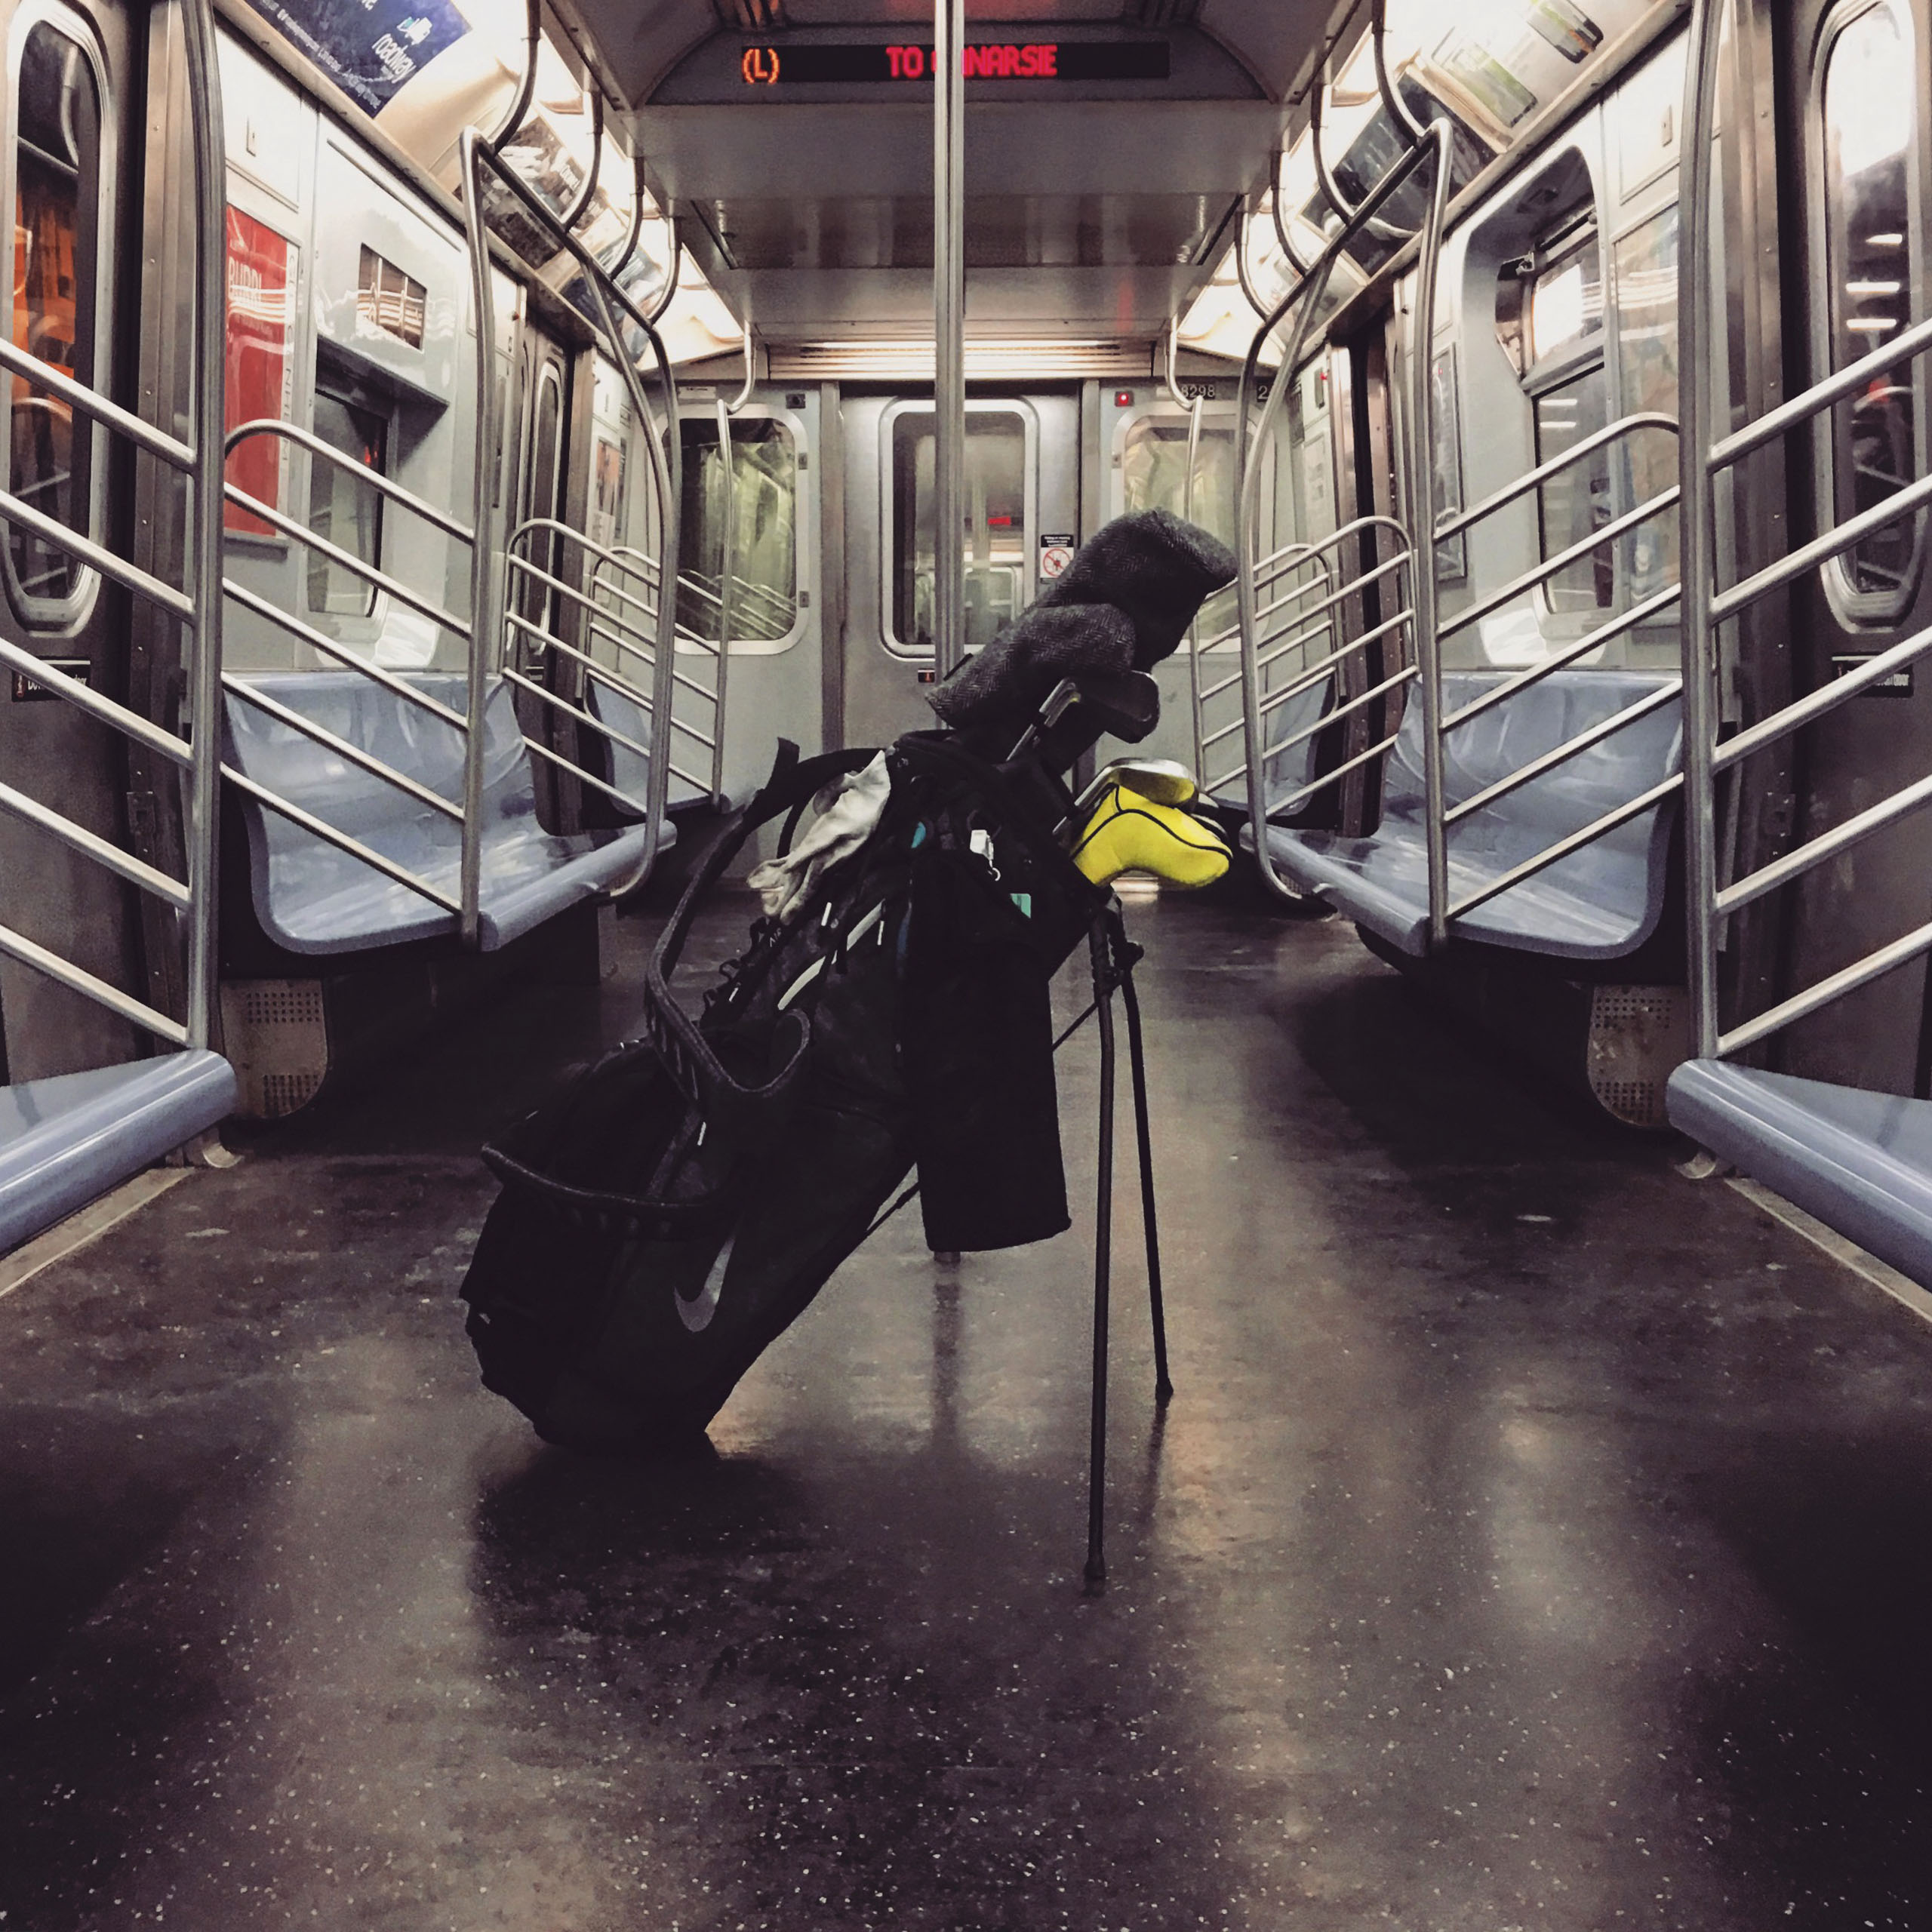 Clubs on a subway